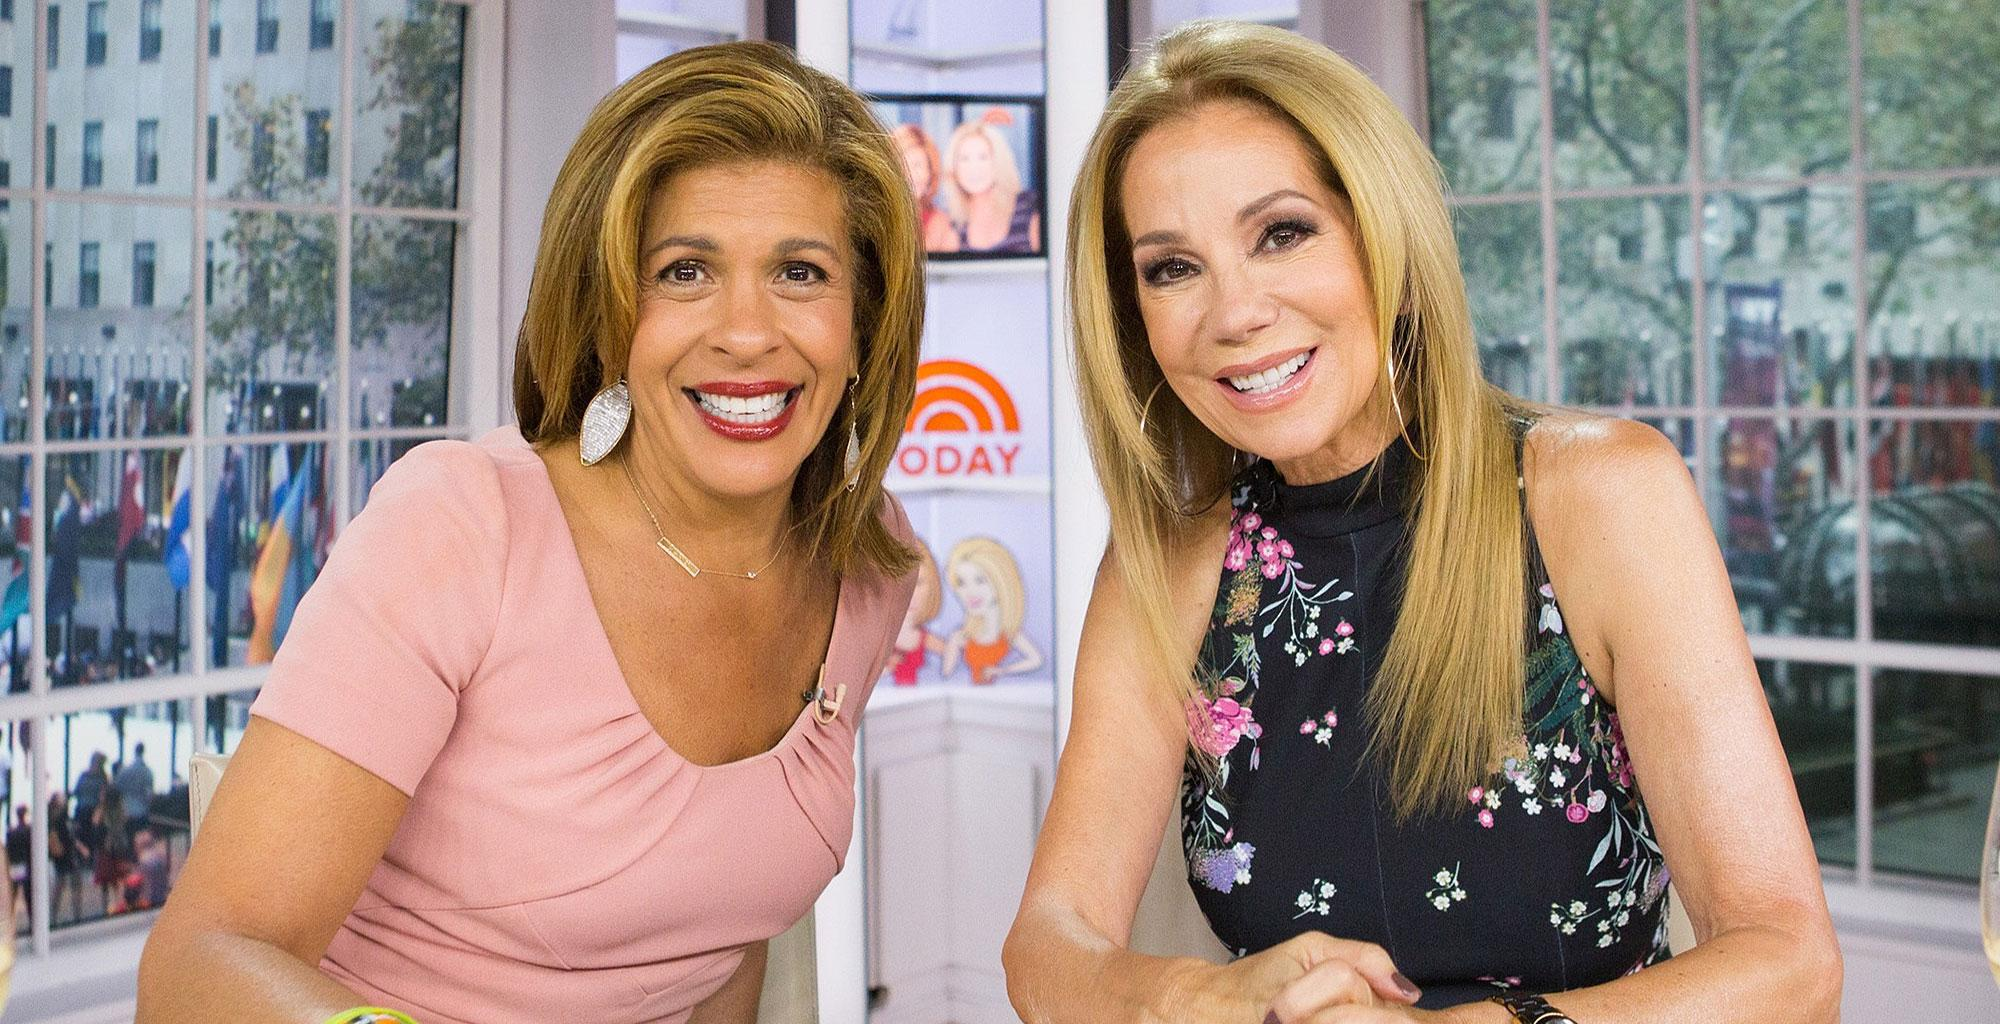 Kathie Lee Gifford Reminisces About Time With Hoda Kotb On Today Before Leaving The Show - Gets Emotional